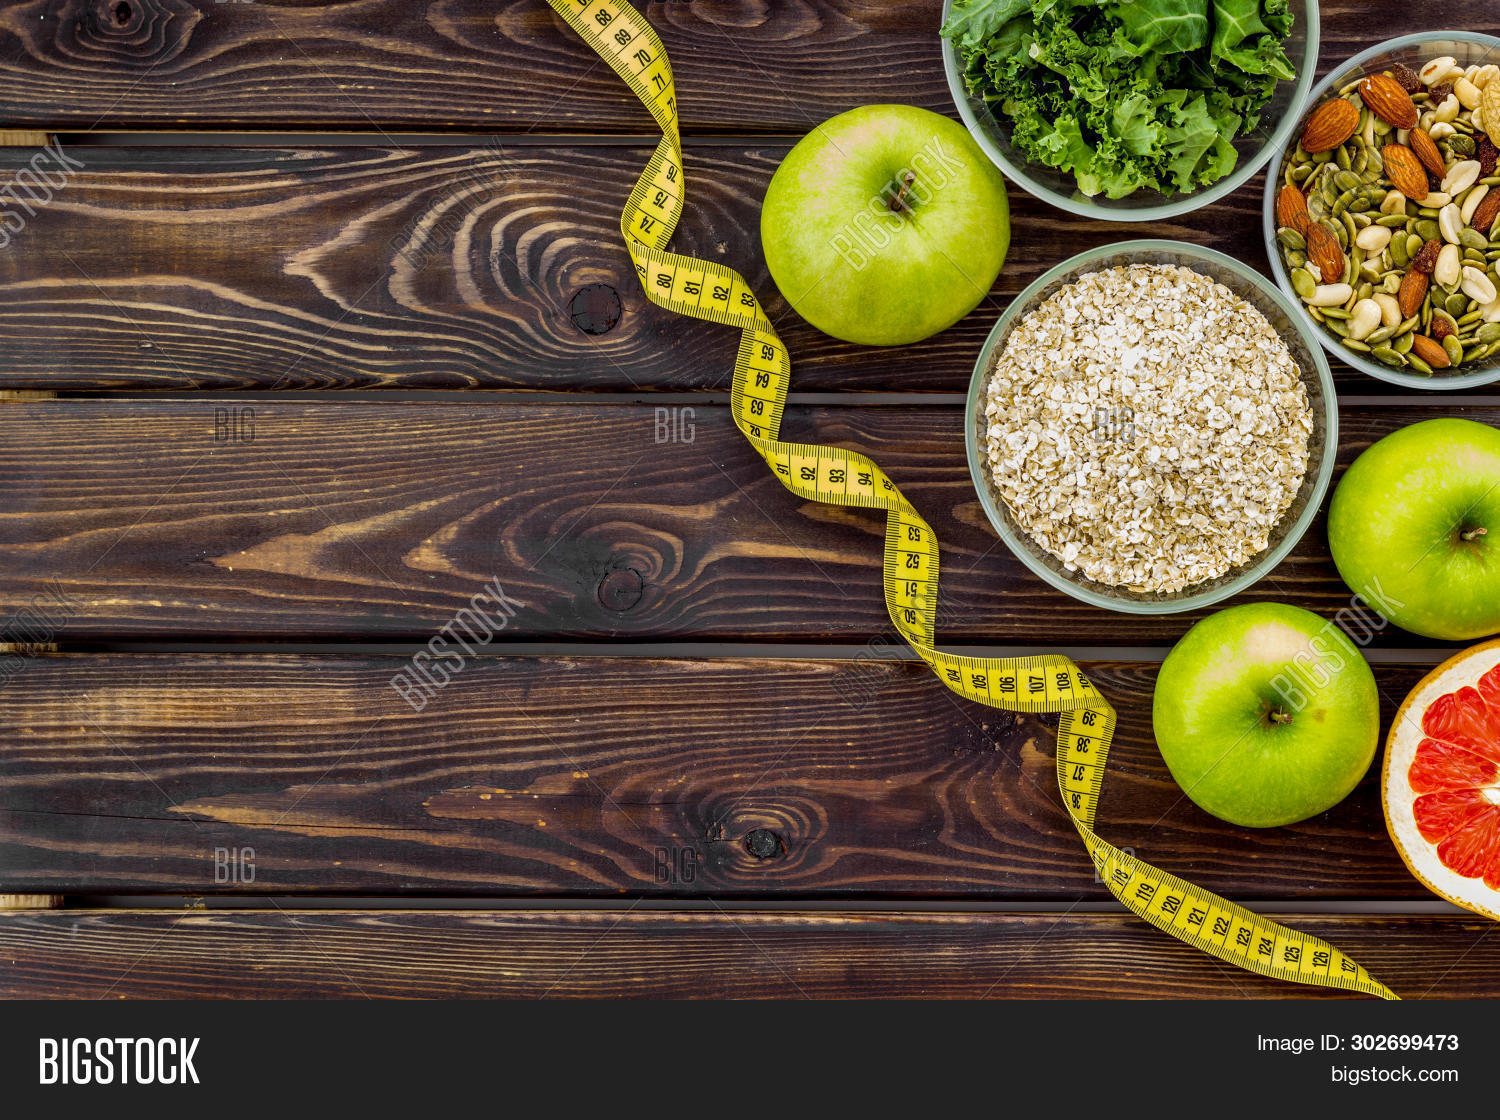 Diet Weight Loss Image Photo Free Trial Bigstock